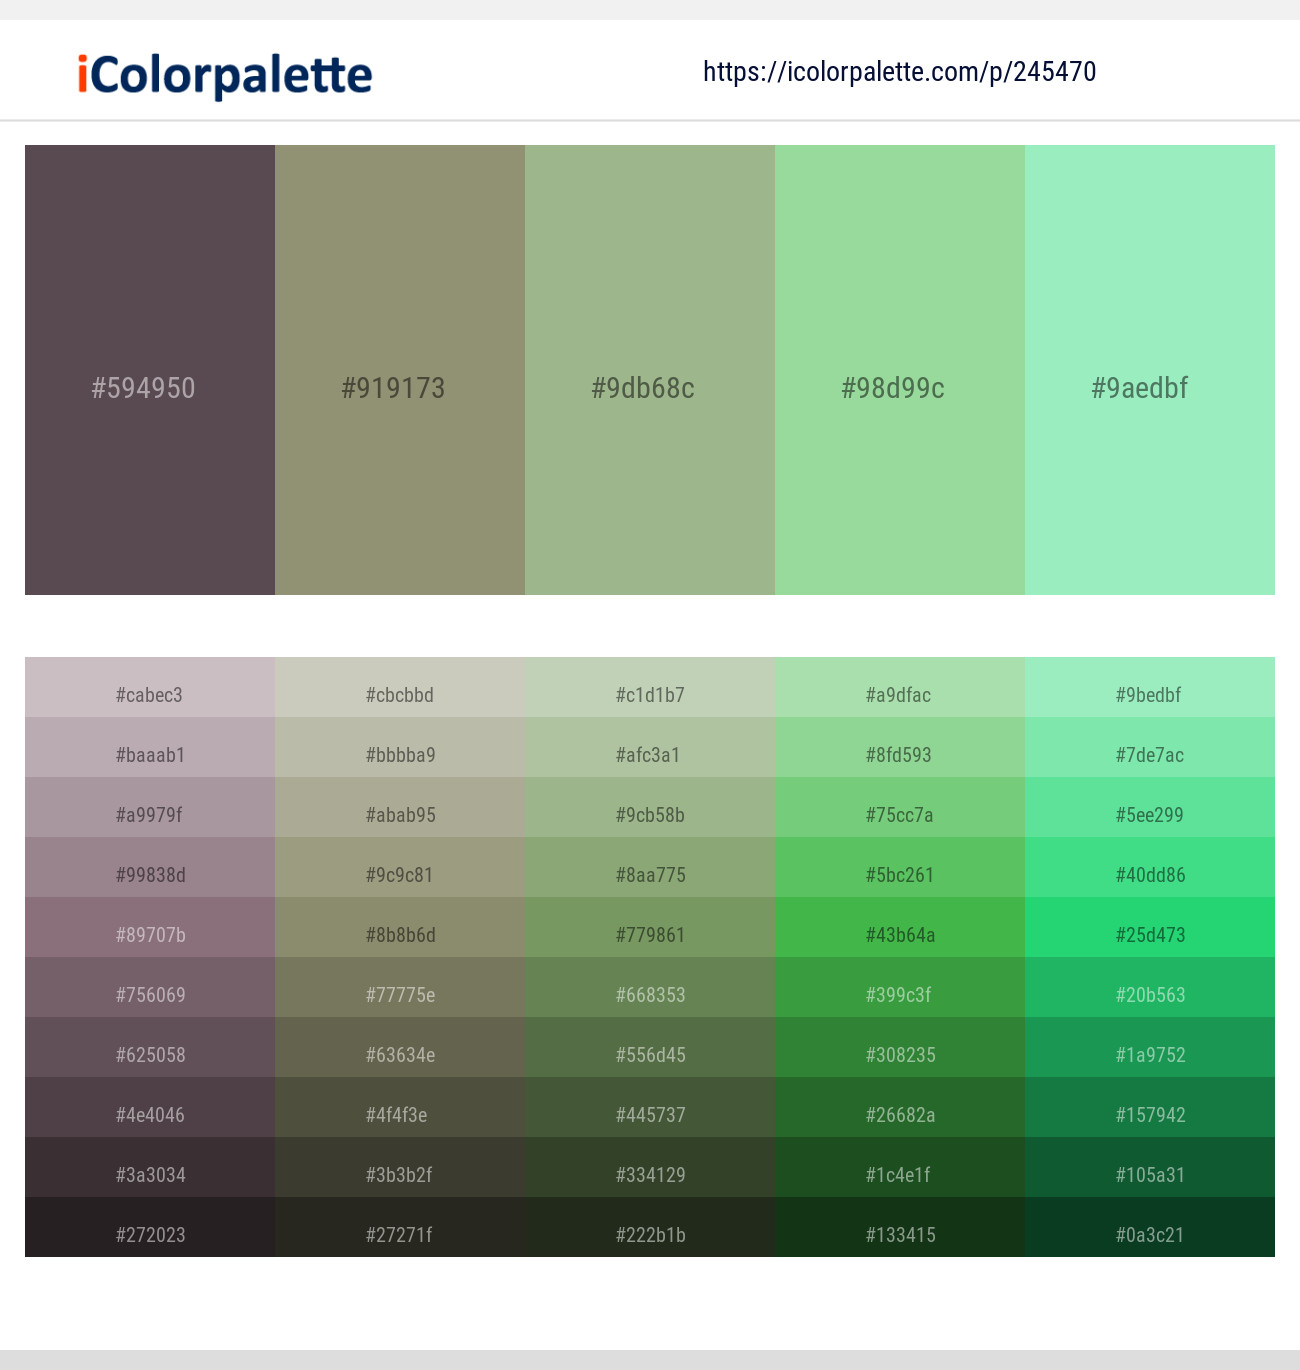 94 Color Palettes With Magic Mint Color In 2019 Icolorpalette